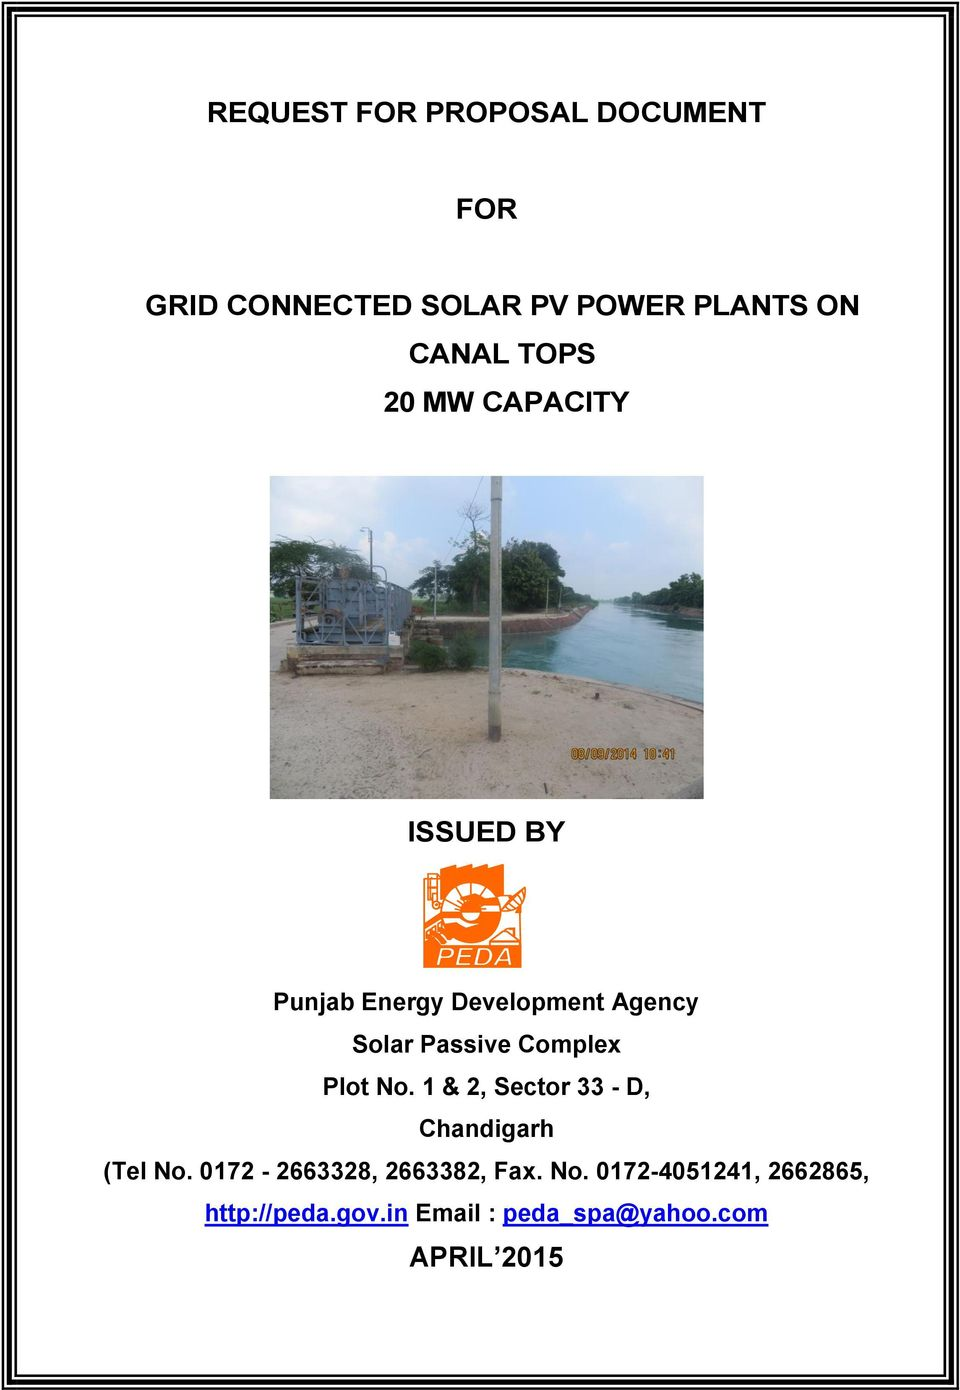 REQUEST FOR PROPOSAL DOCUMENT FOR GRID CONNECTED SOLAR PV POWER